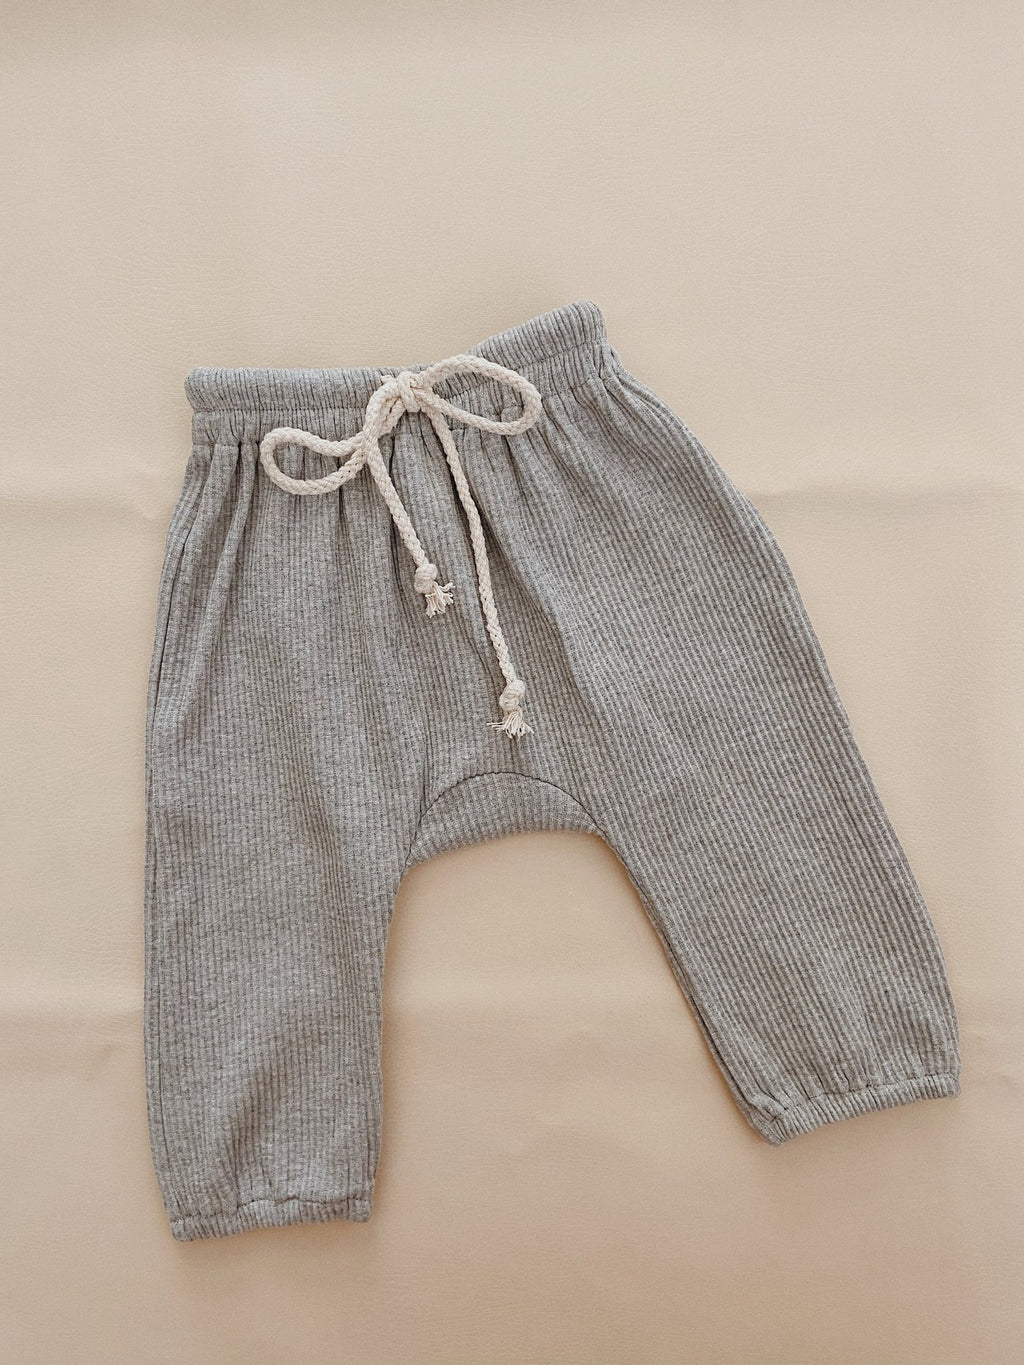 IGGY TRACK PANTS   Tiny Trove